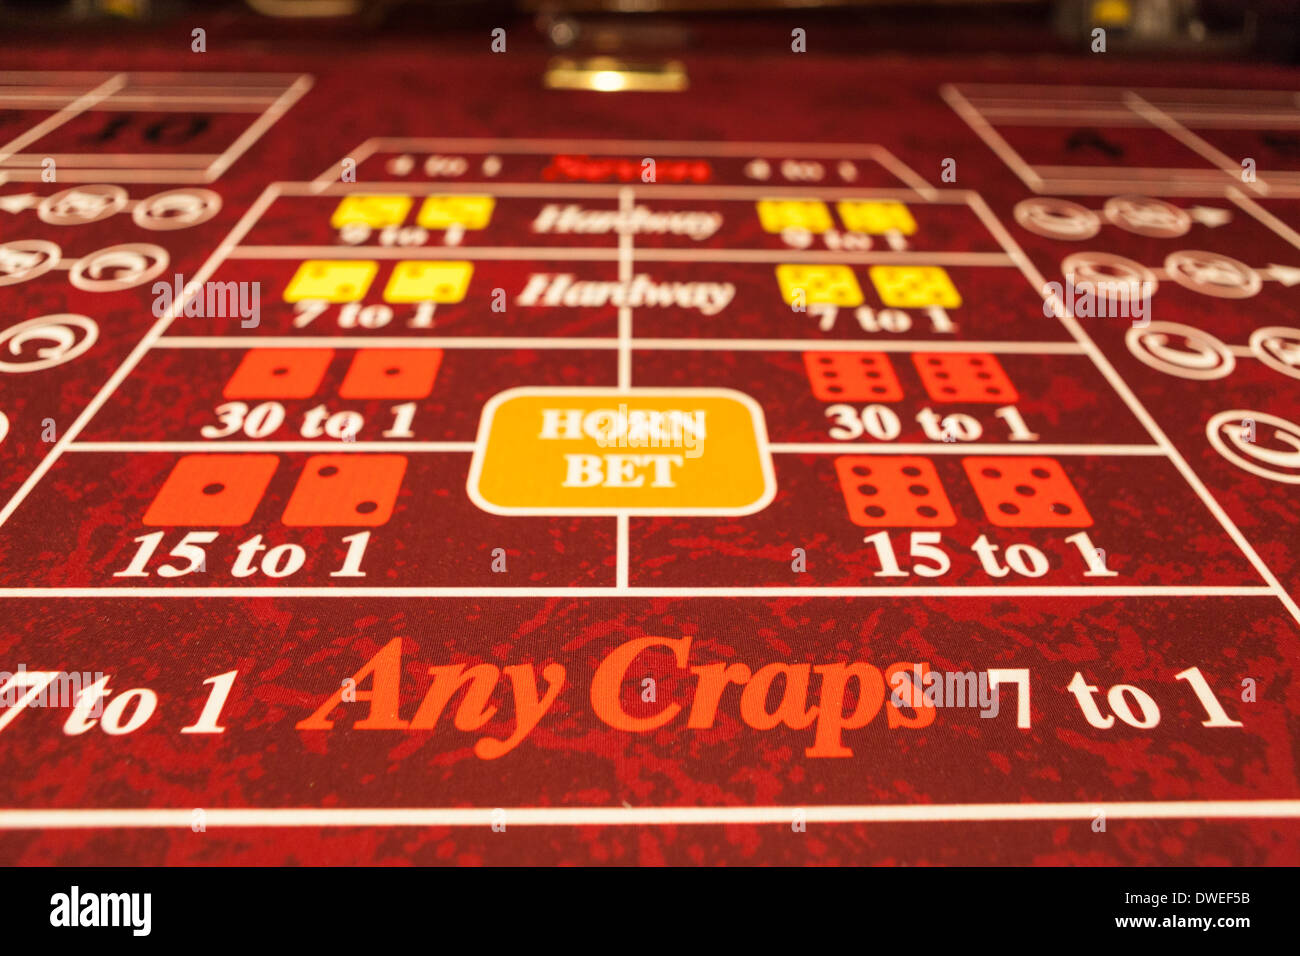 Gambling Table - Stock Image